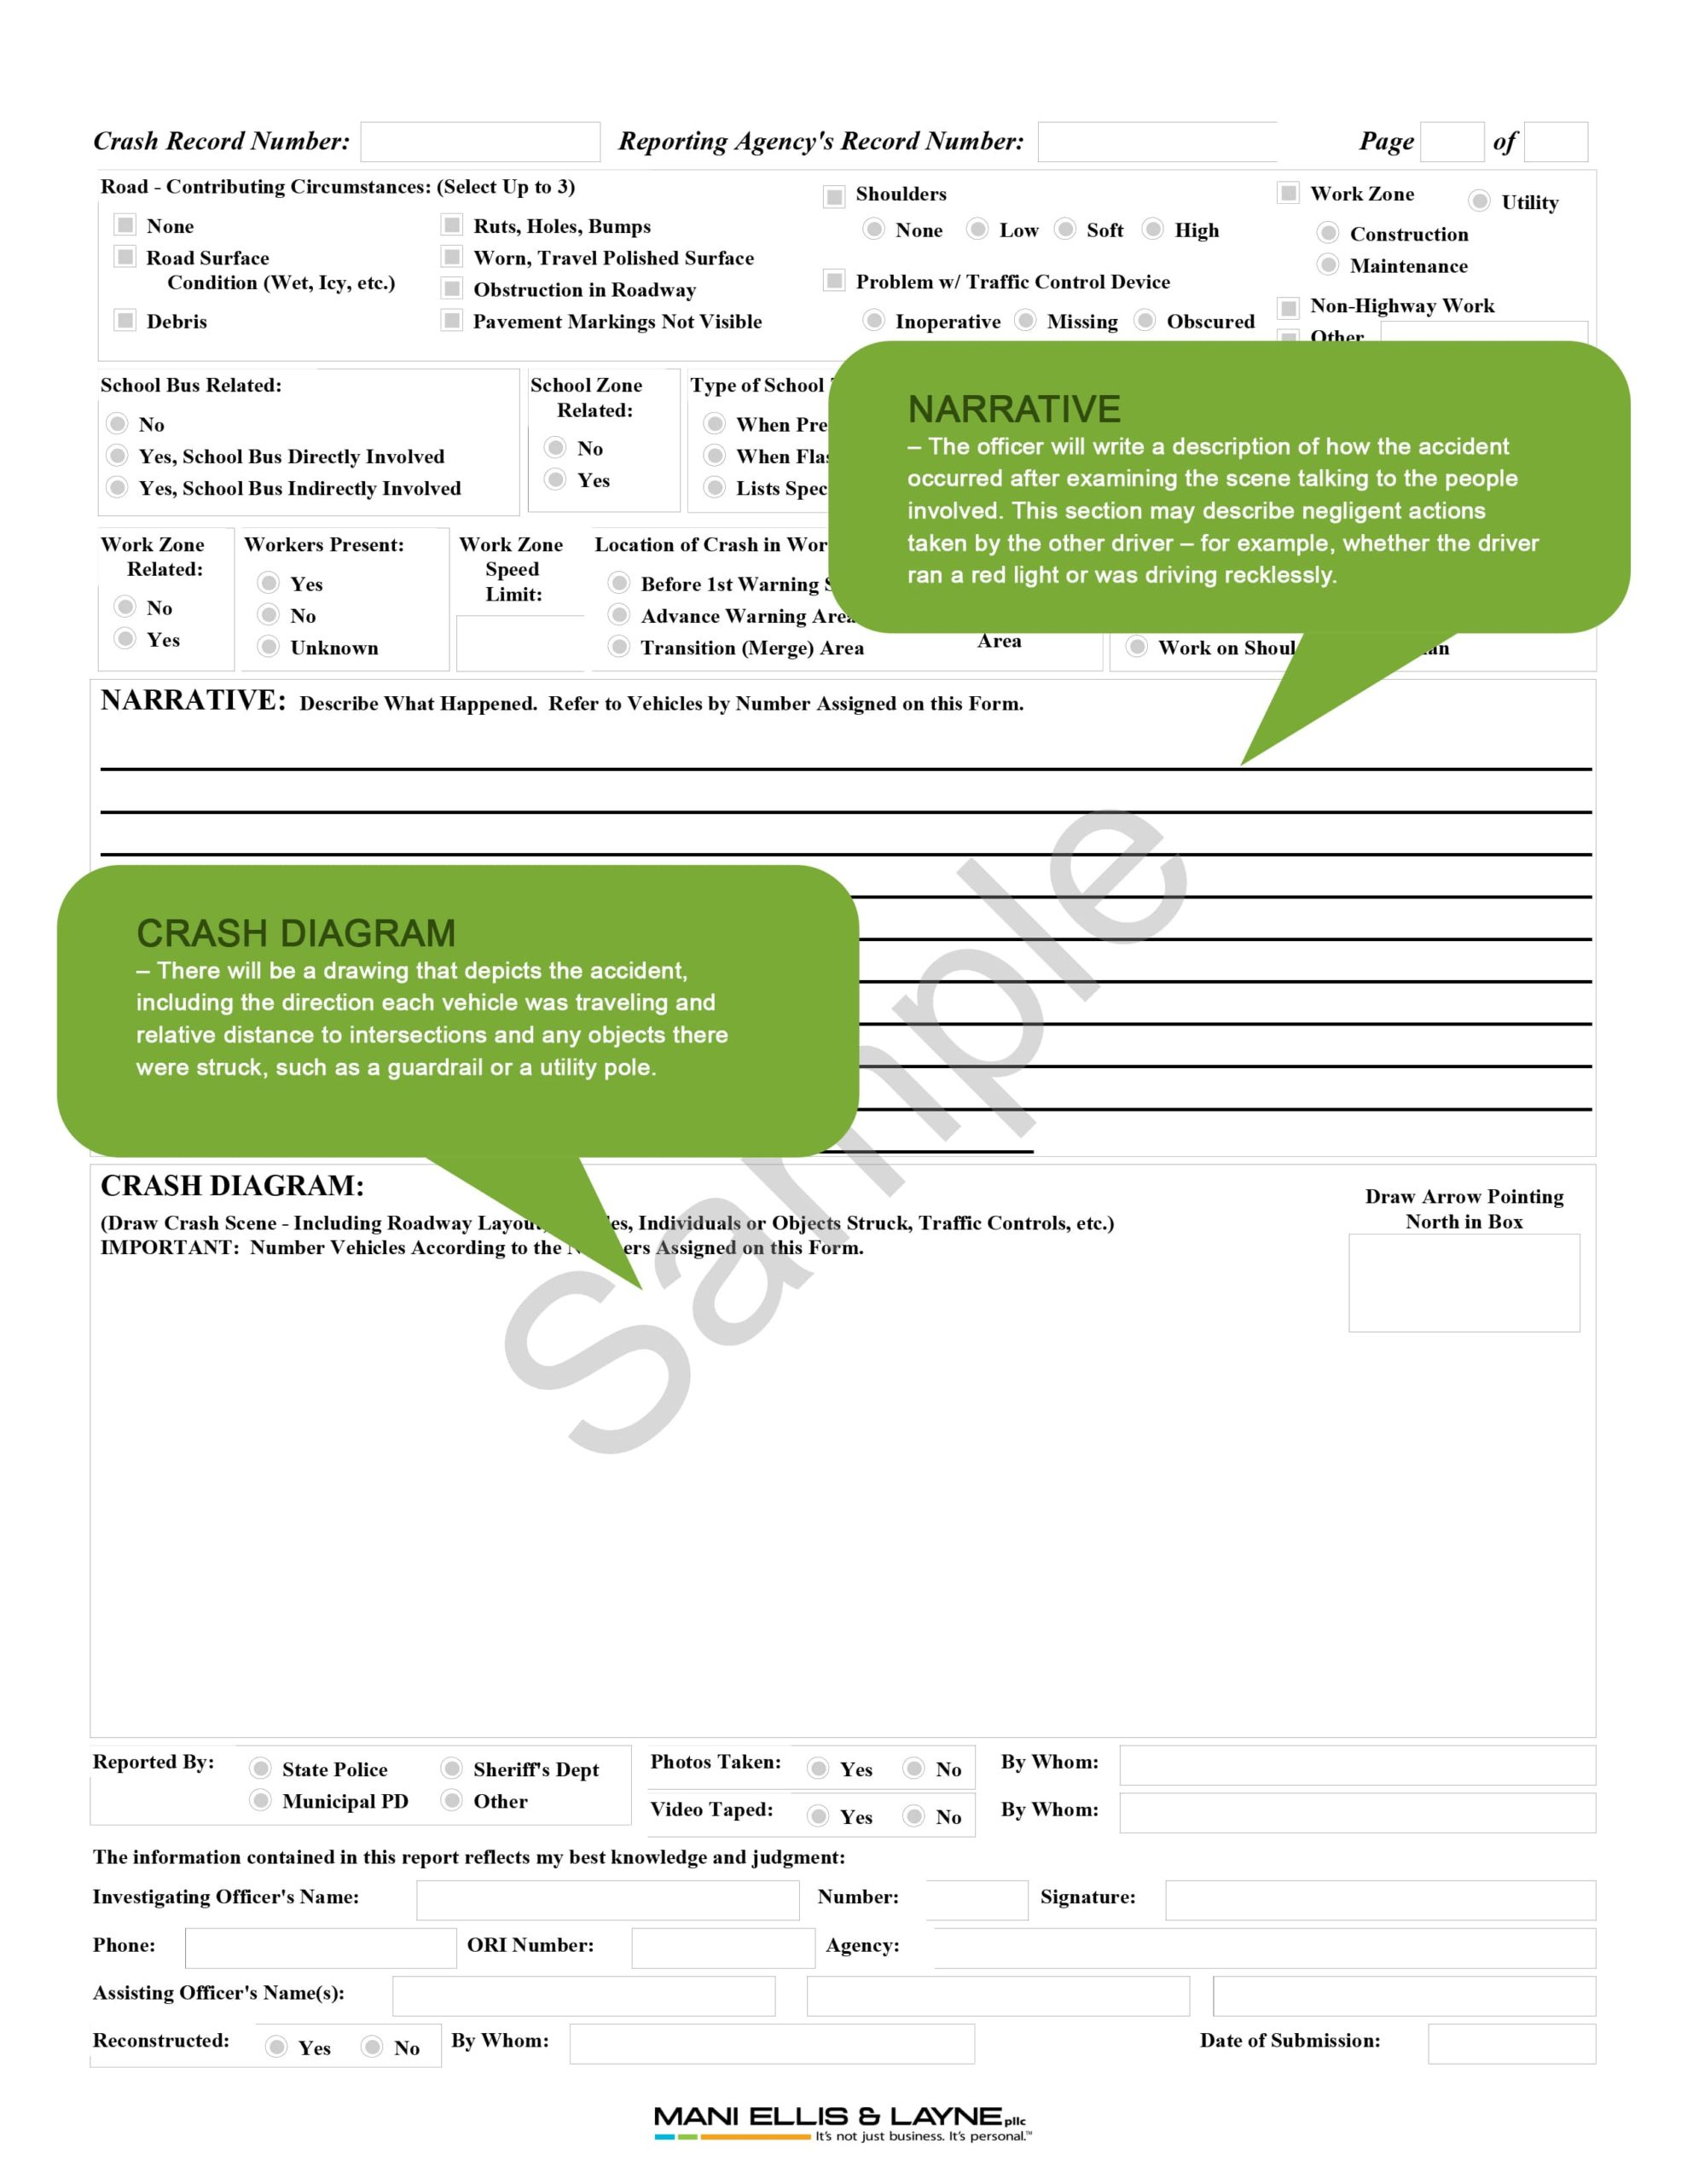 Accident Report Instructions page 2